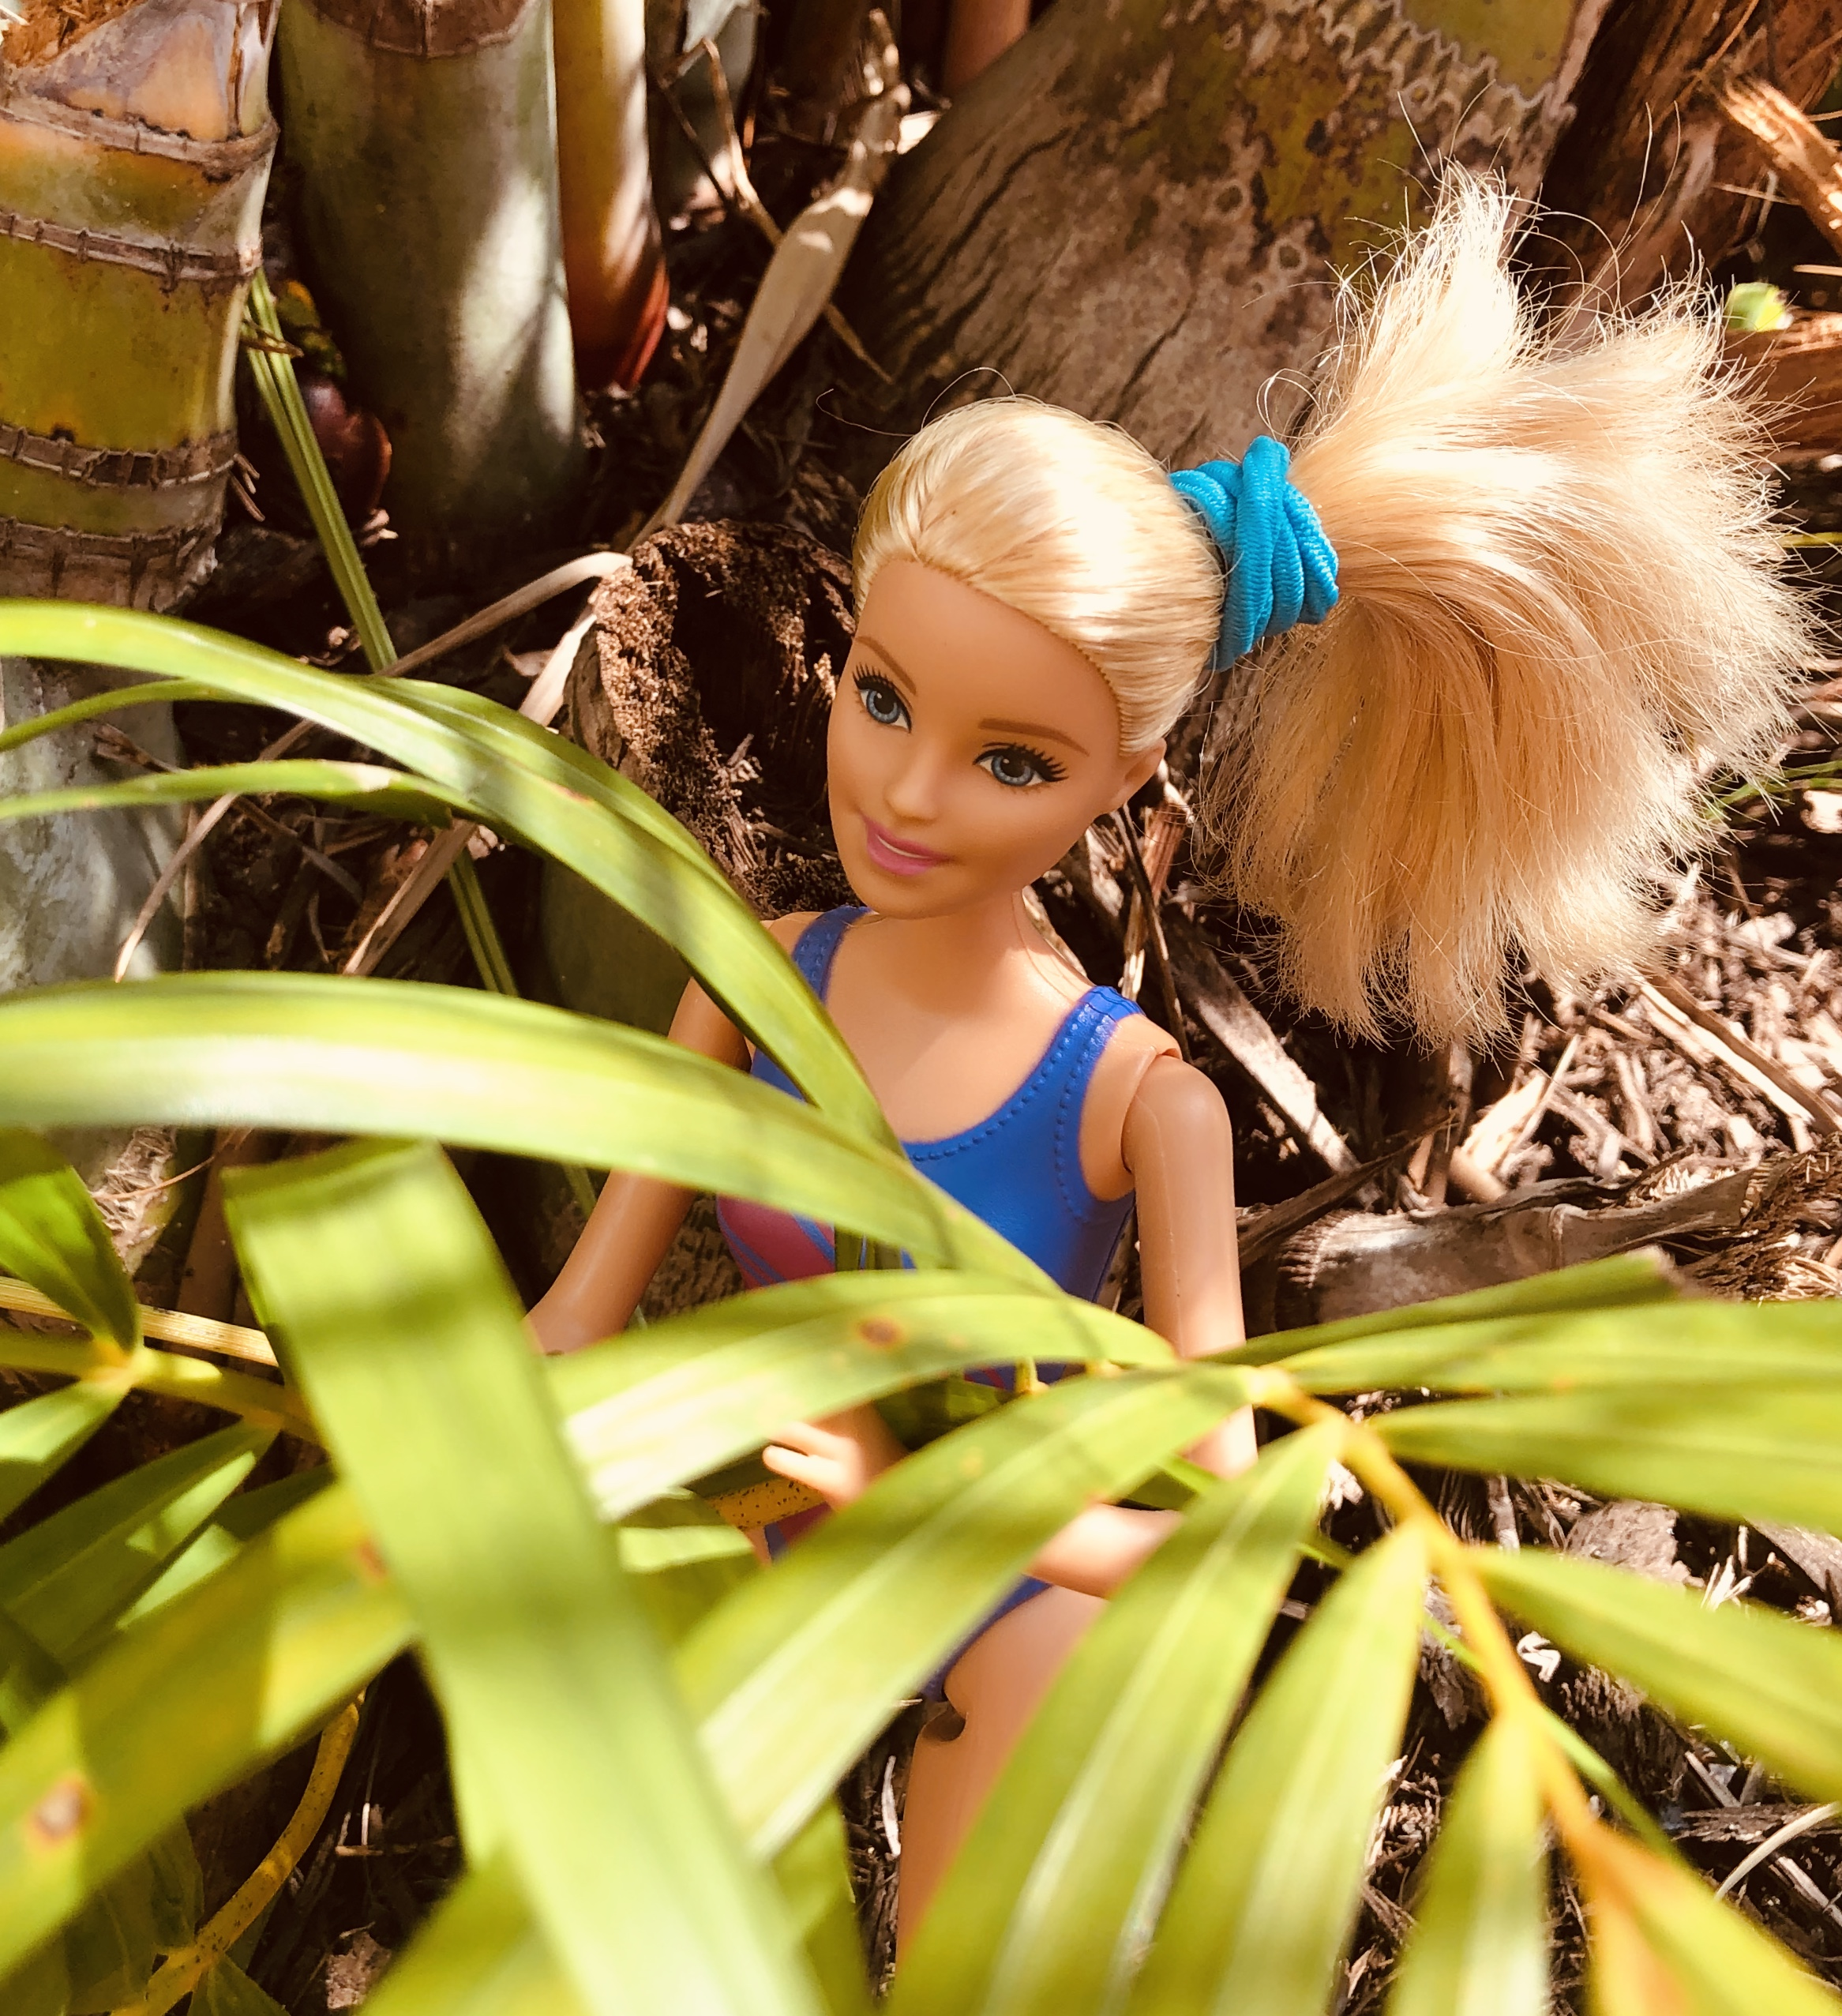 Barbie Doll with a ponytail in some leaves for the Barbie Story for kids, Hiking in Costa Rica.